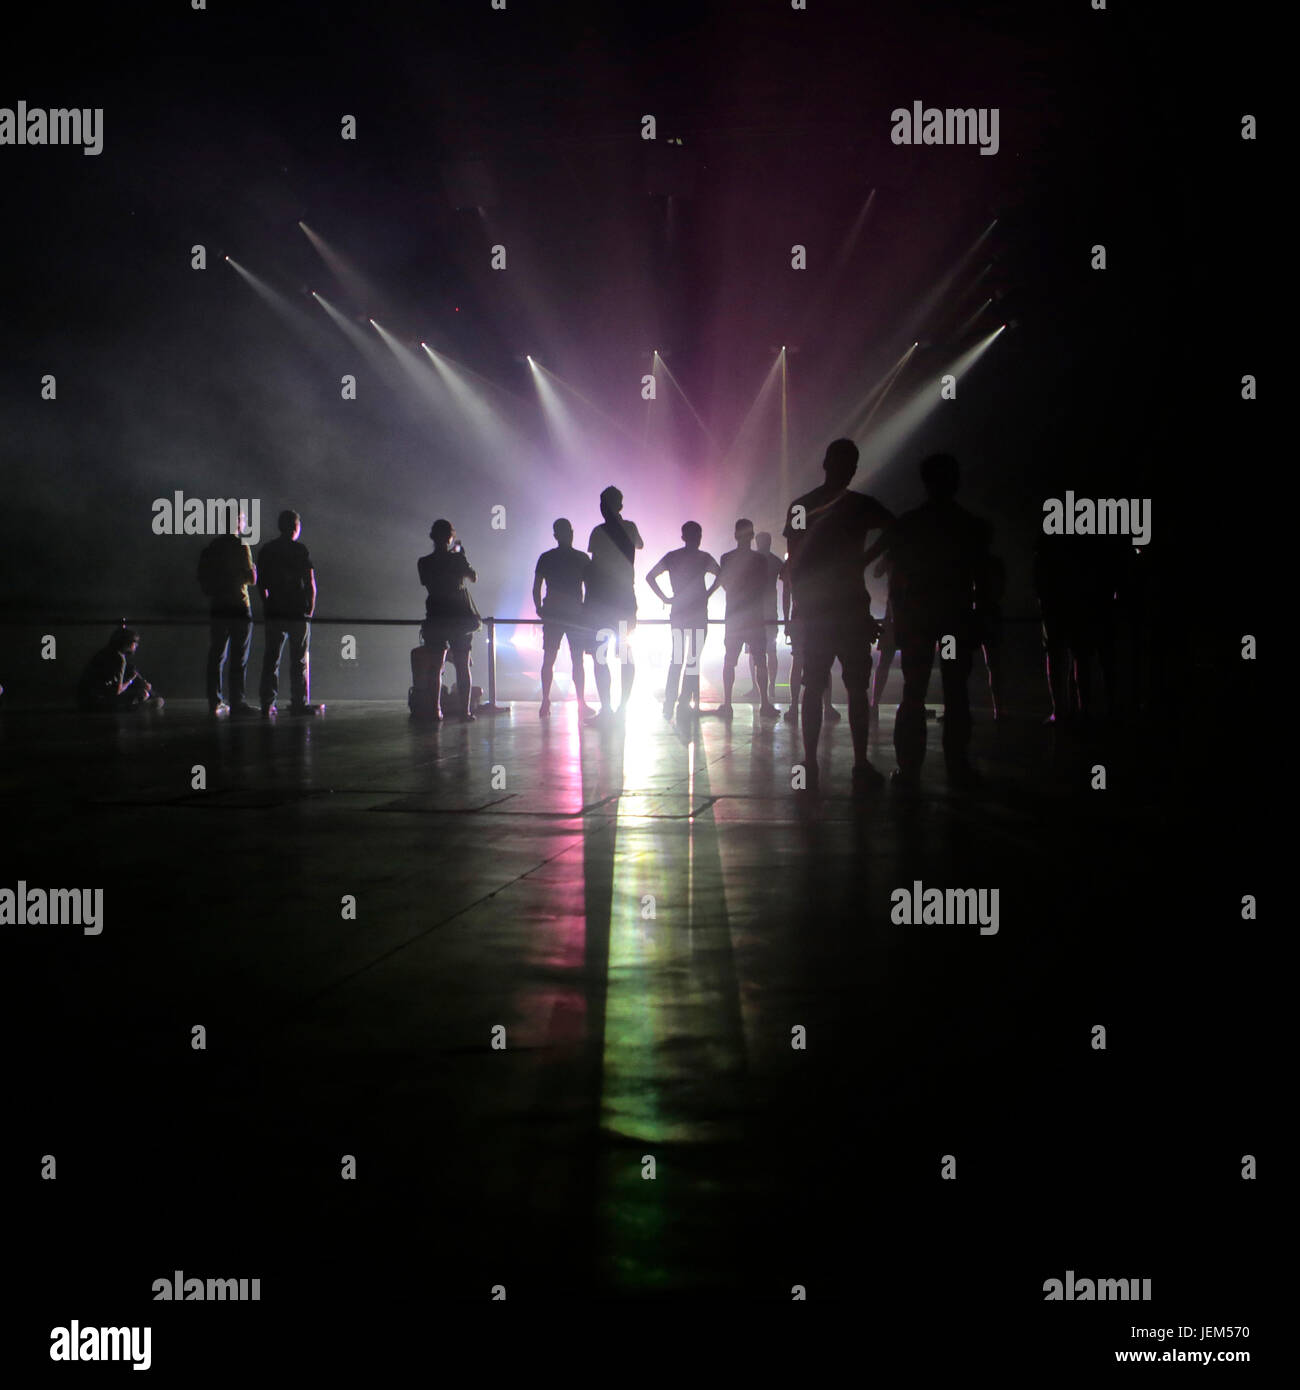 People watching a light spectacle by Daito Manabe - Stock Image